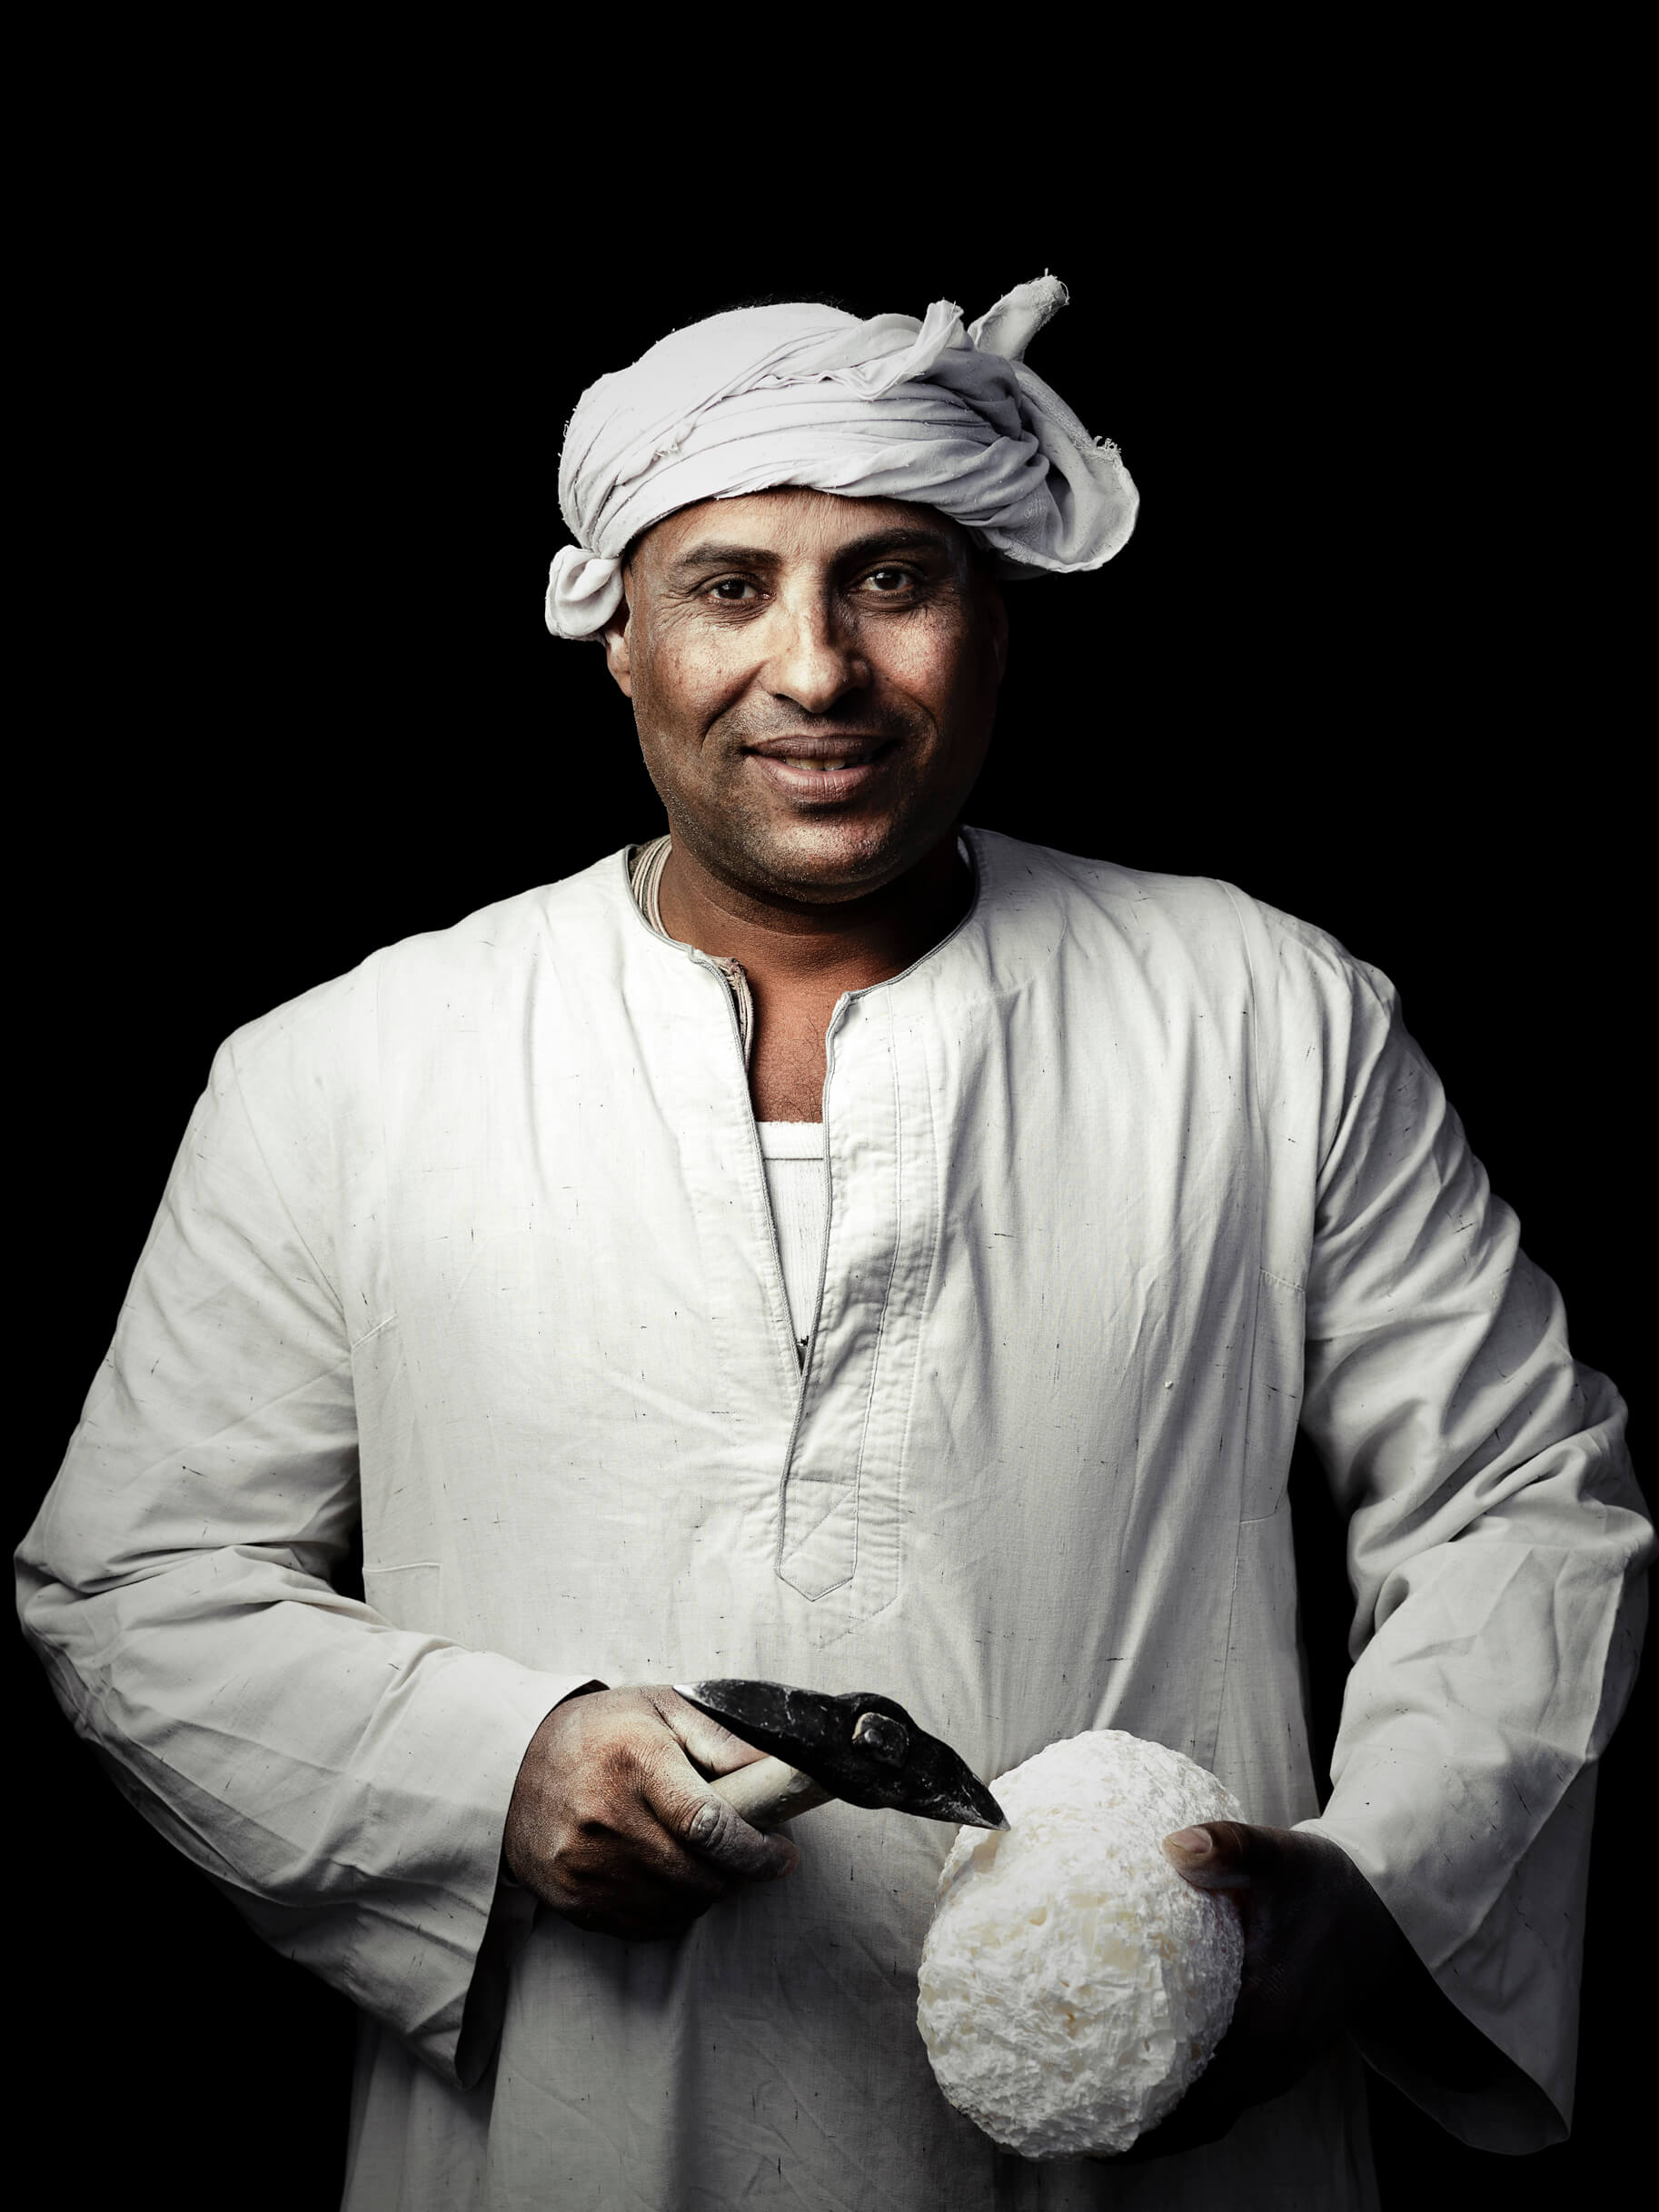 Egypt_People_Portraits_0037